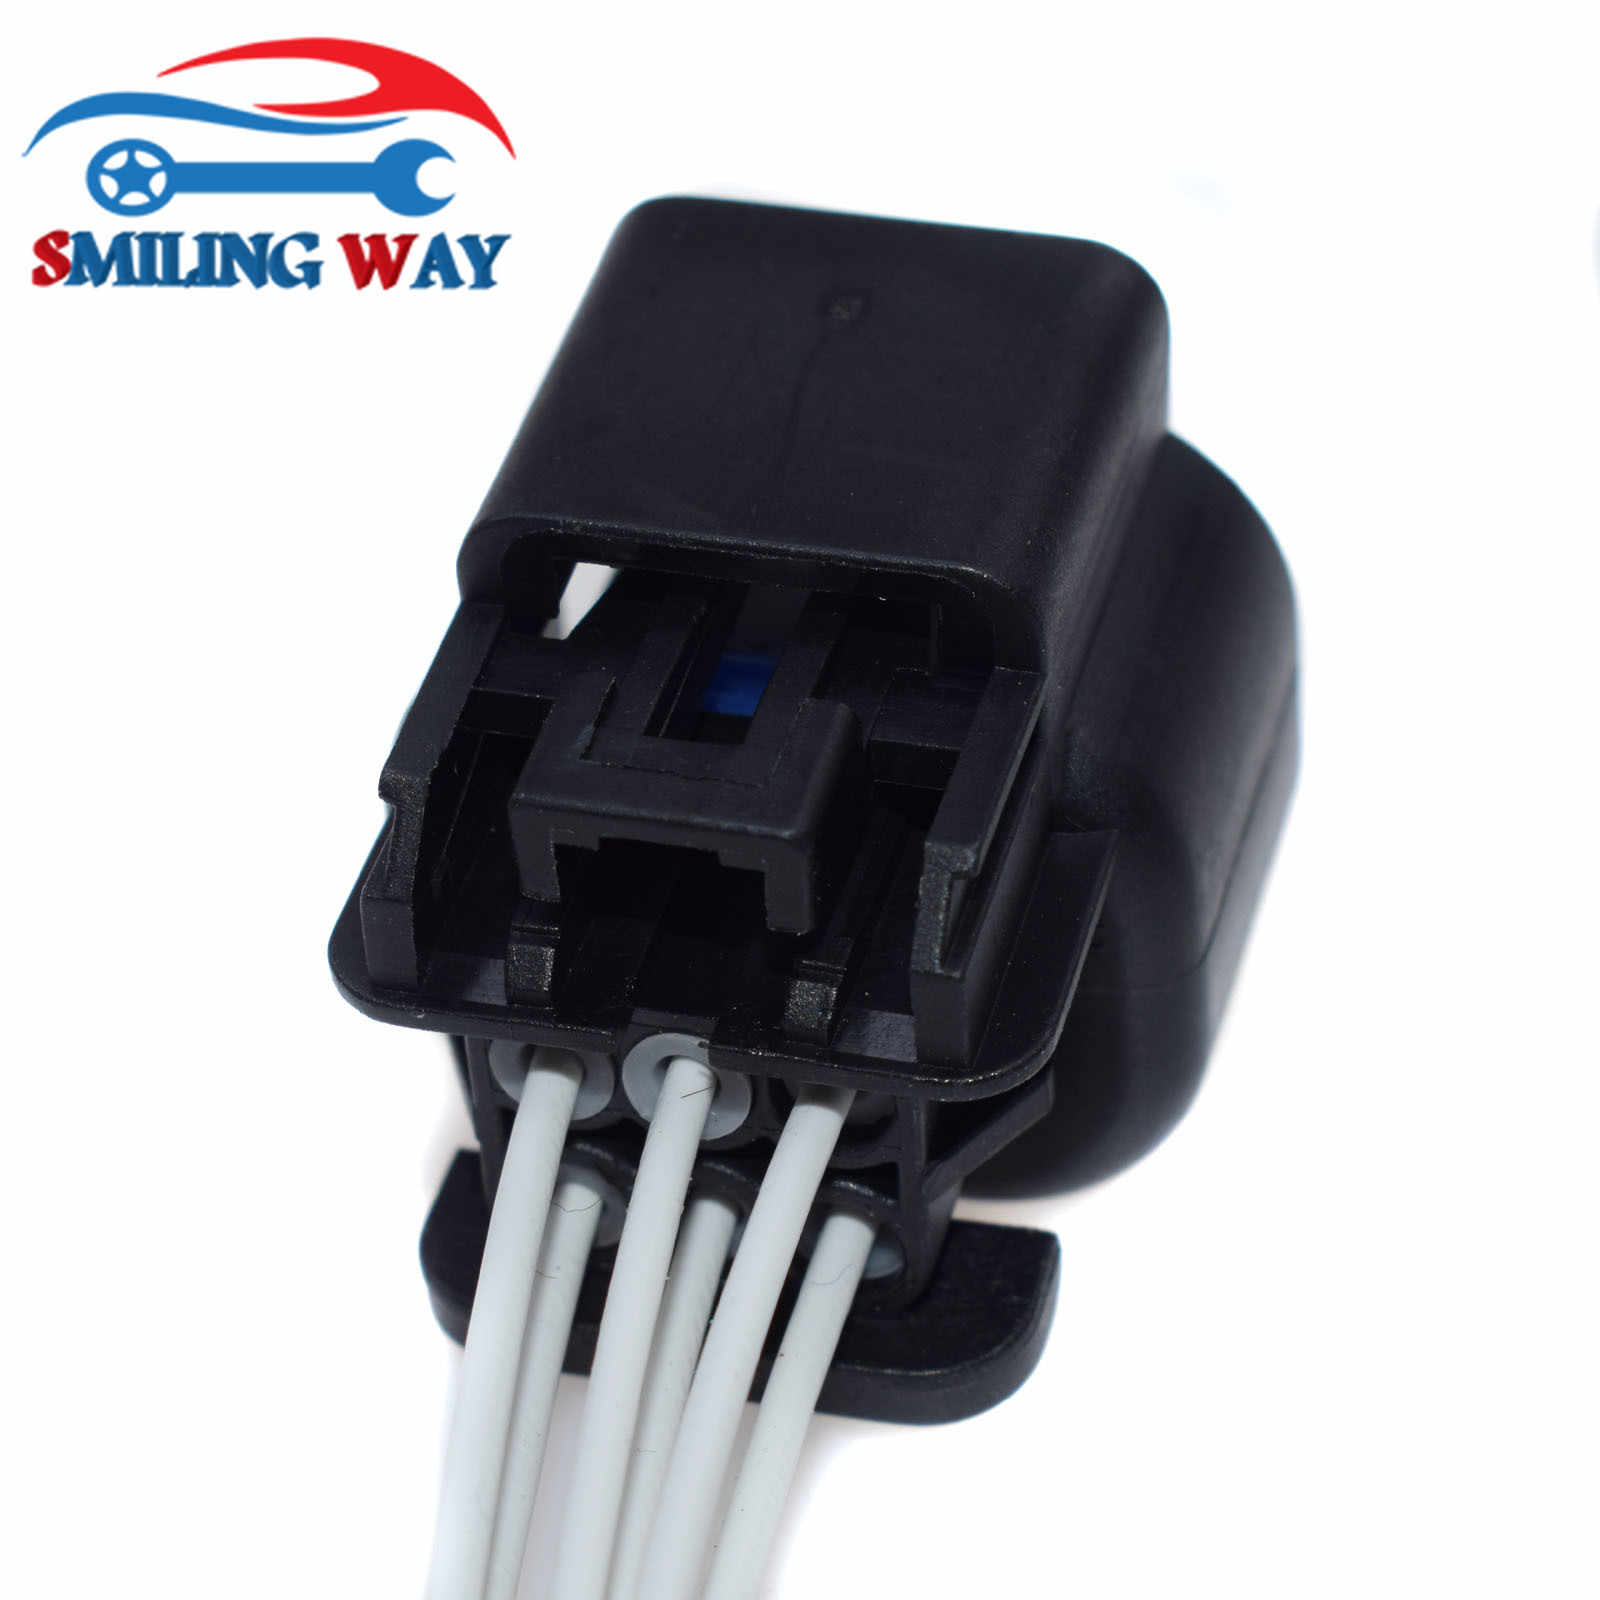 smiling way ls2 ls3 ls7 throttle body actuator connector wire harness wiring pigtail plug for  [ 1600 x 1600 Pixel ]